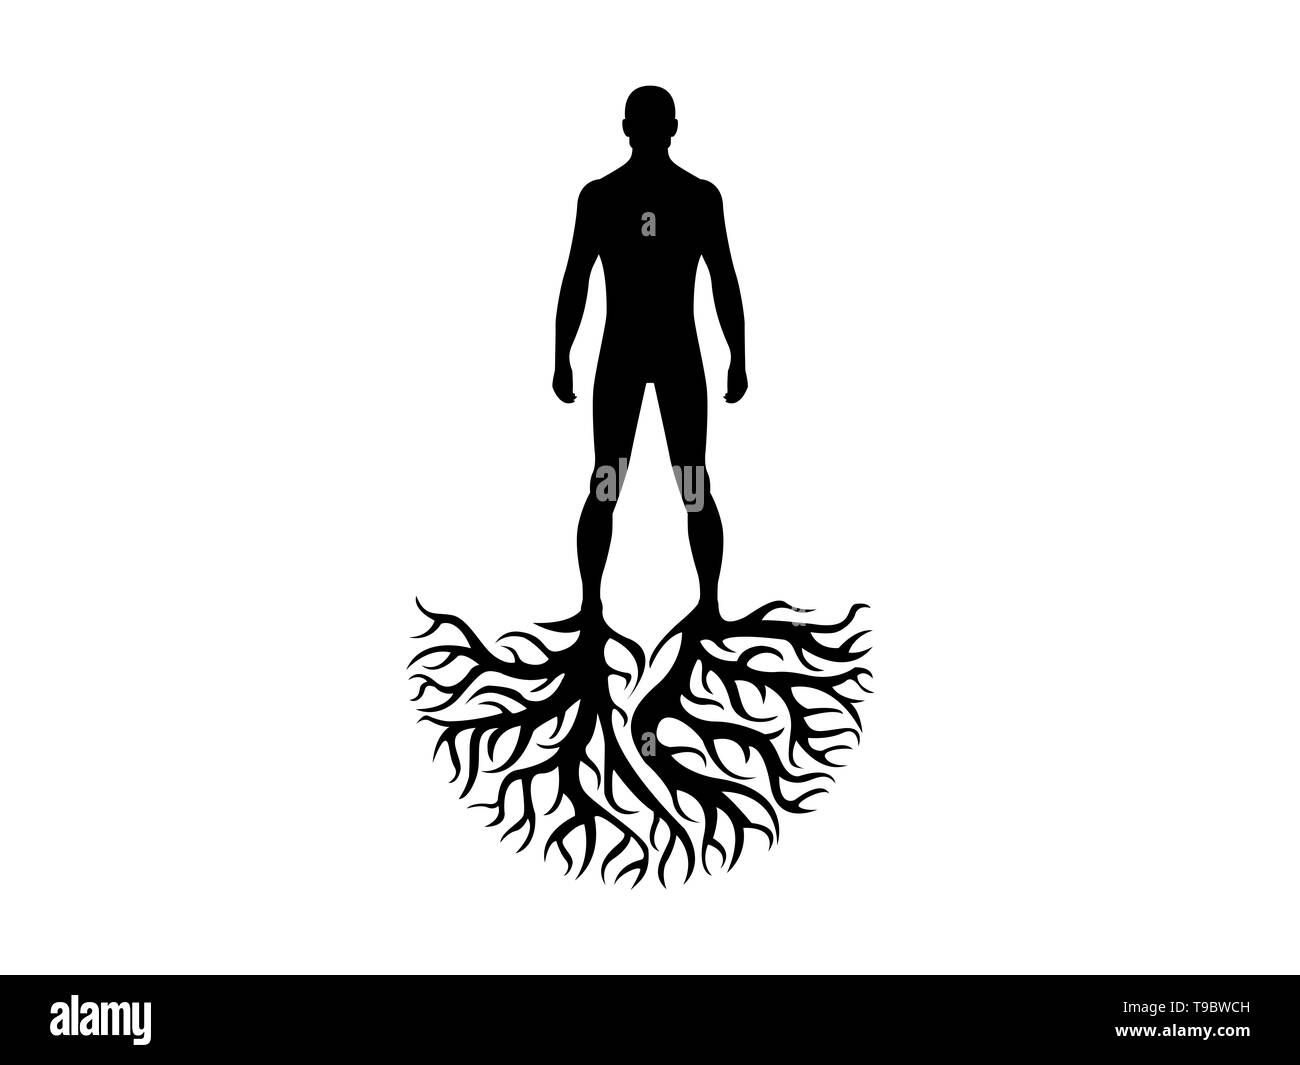 Person roots personality and heritage illustration isolated on white background - Stock Image